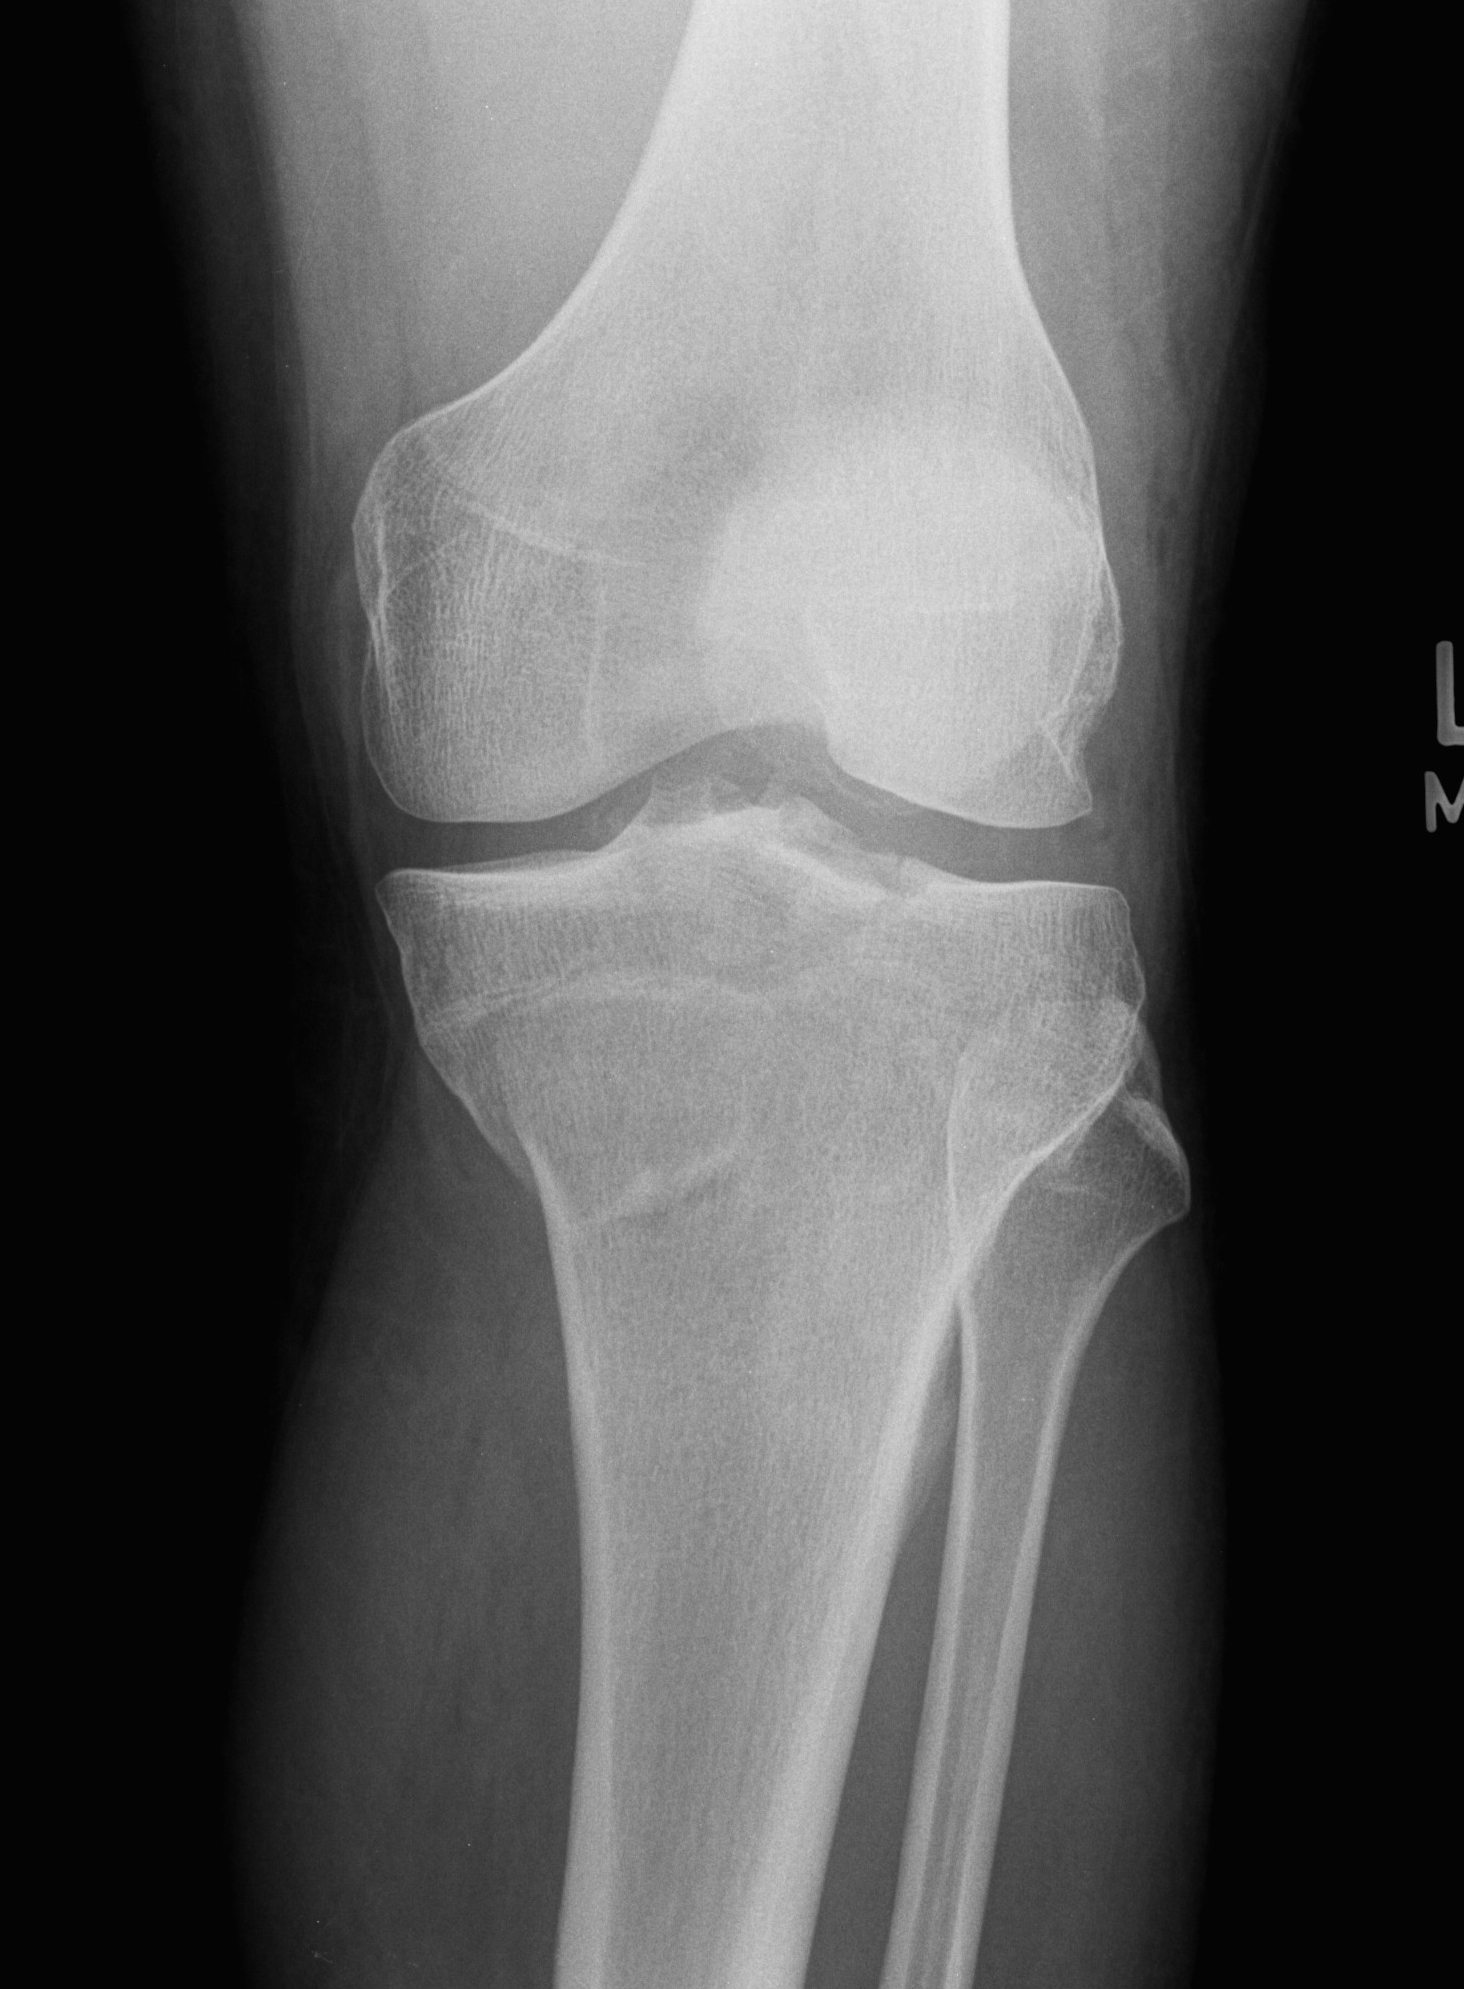 Ucsd musculoskeletal radiology - Tibial plafond fracture classification ...